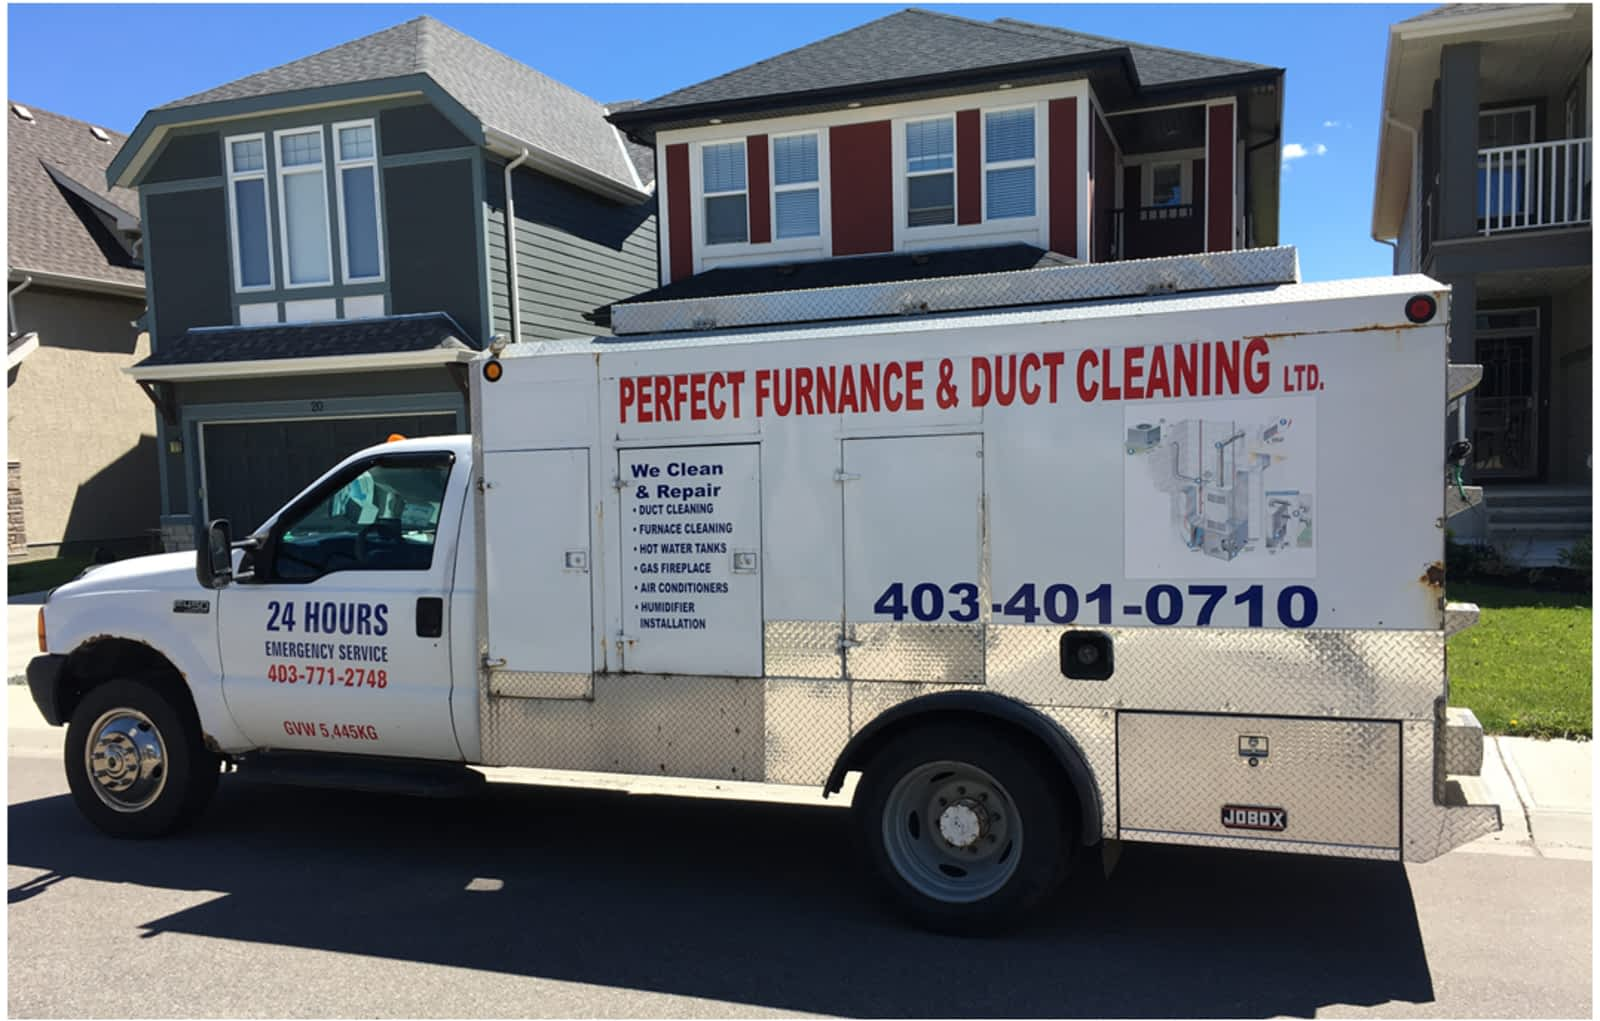 Perfect Furnace & Duct Cleaning Ltd